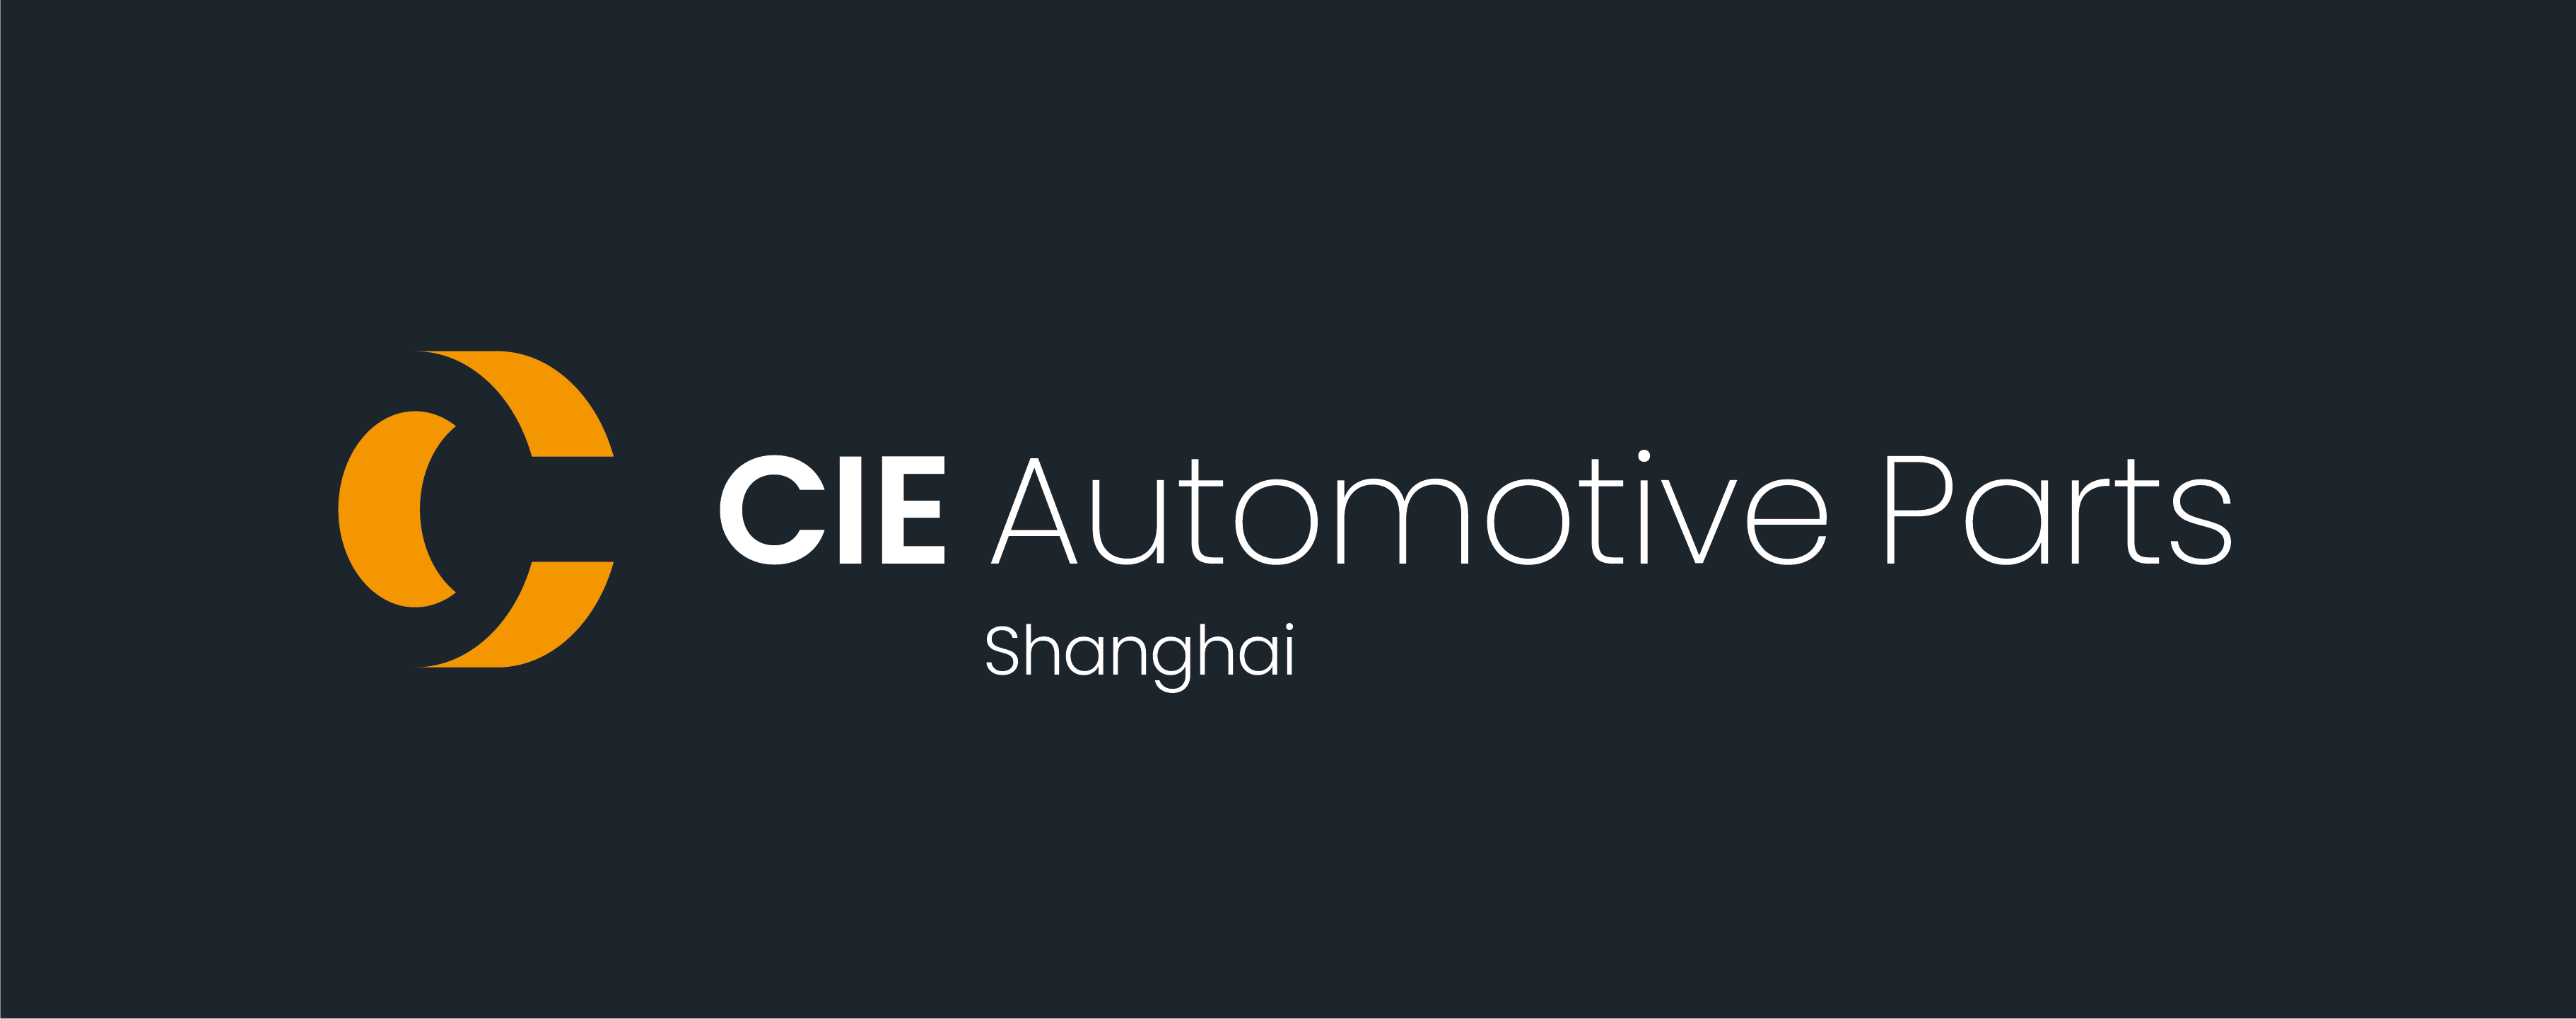 CIE Automotive Parts Shanghai